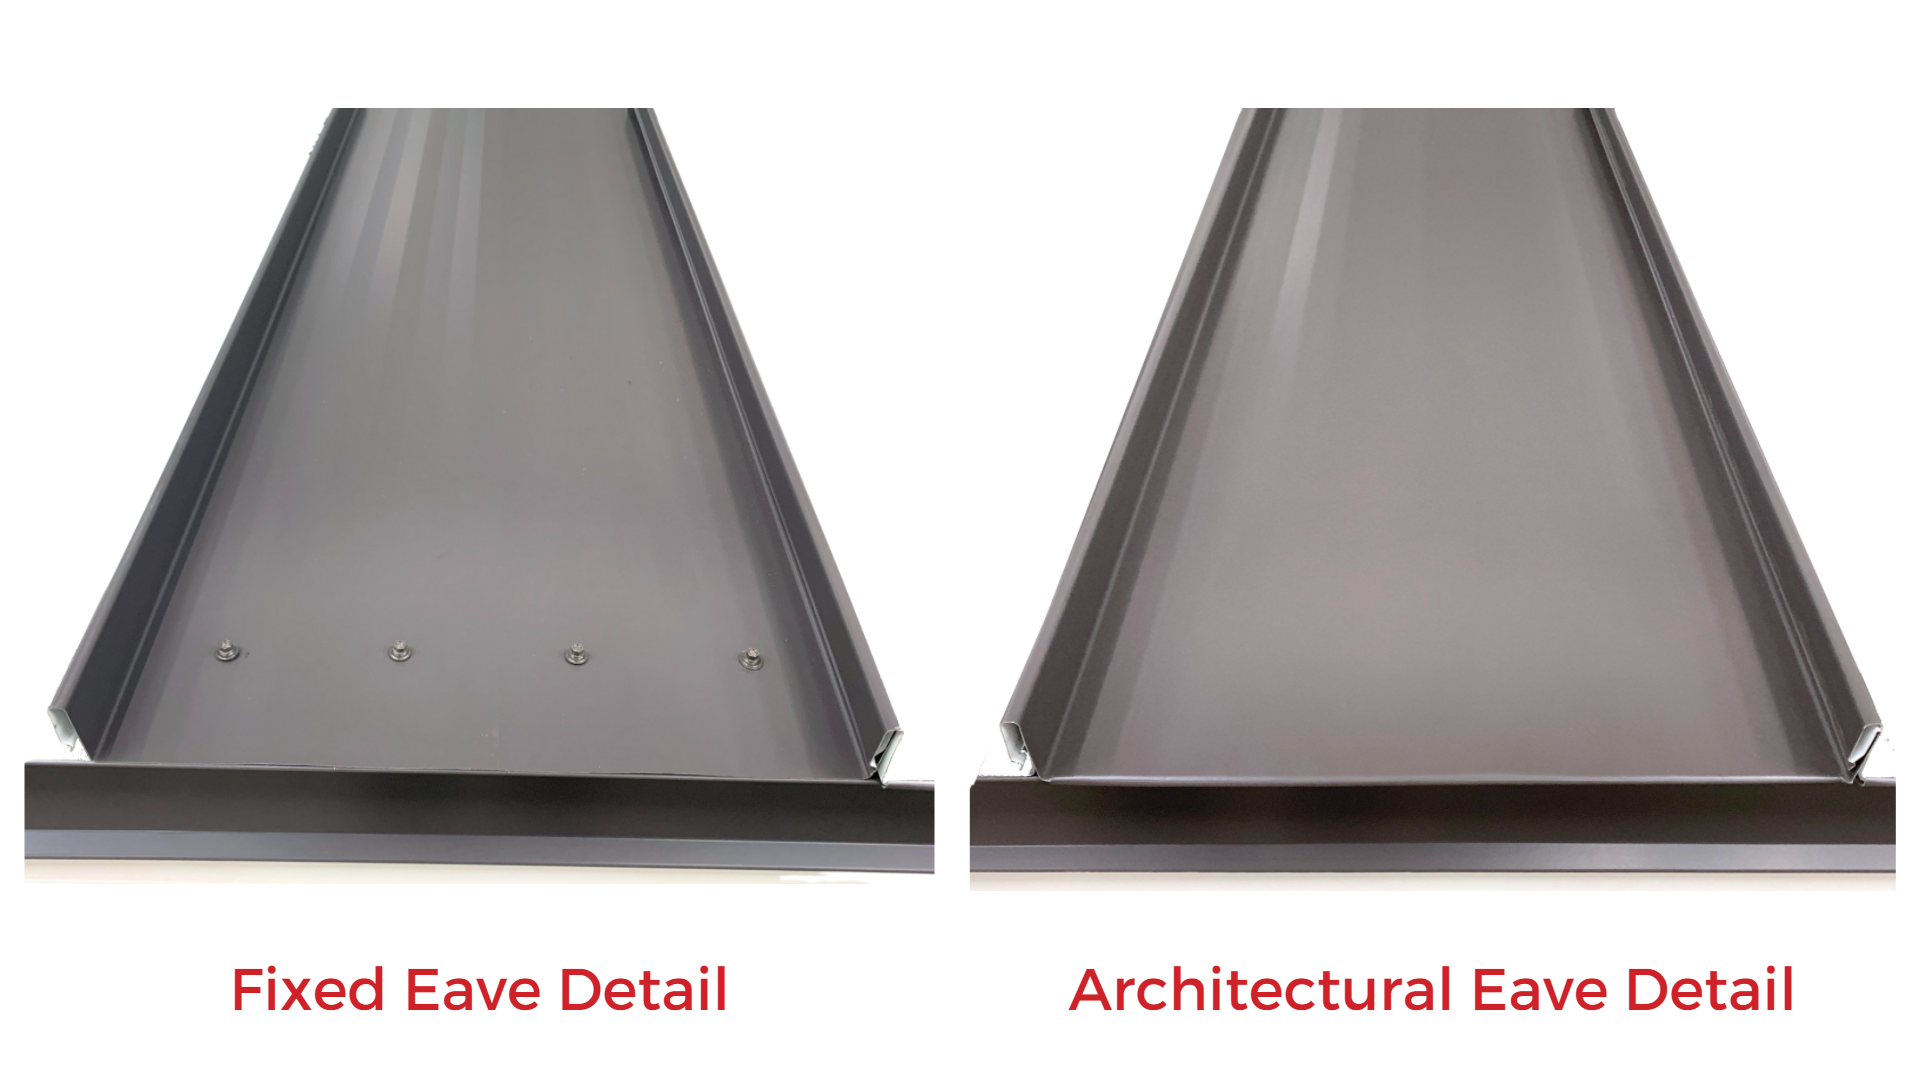 eave-notching-fixed-vs-architectural